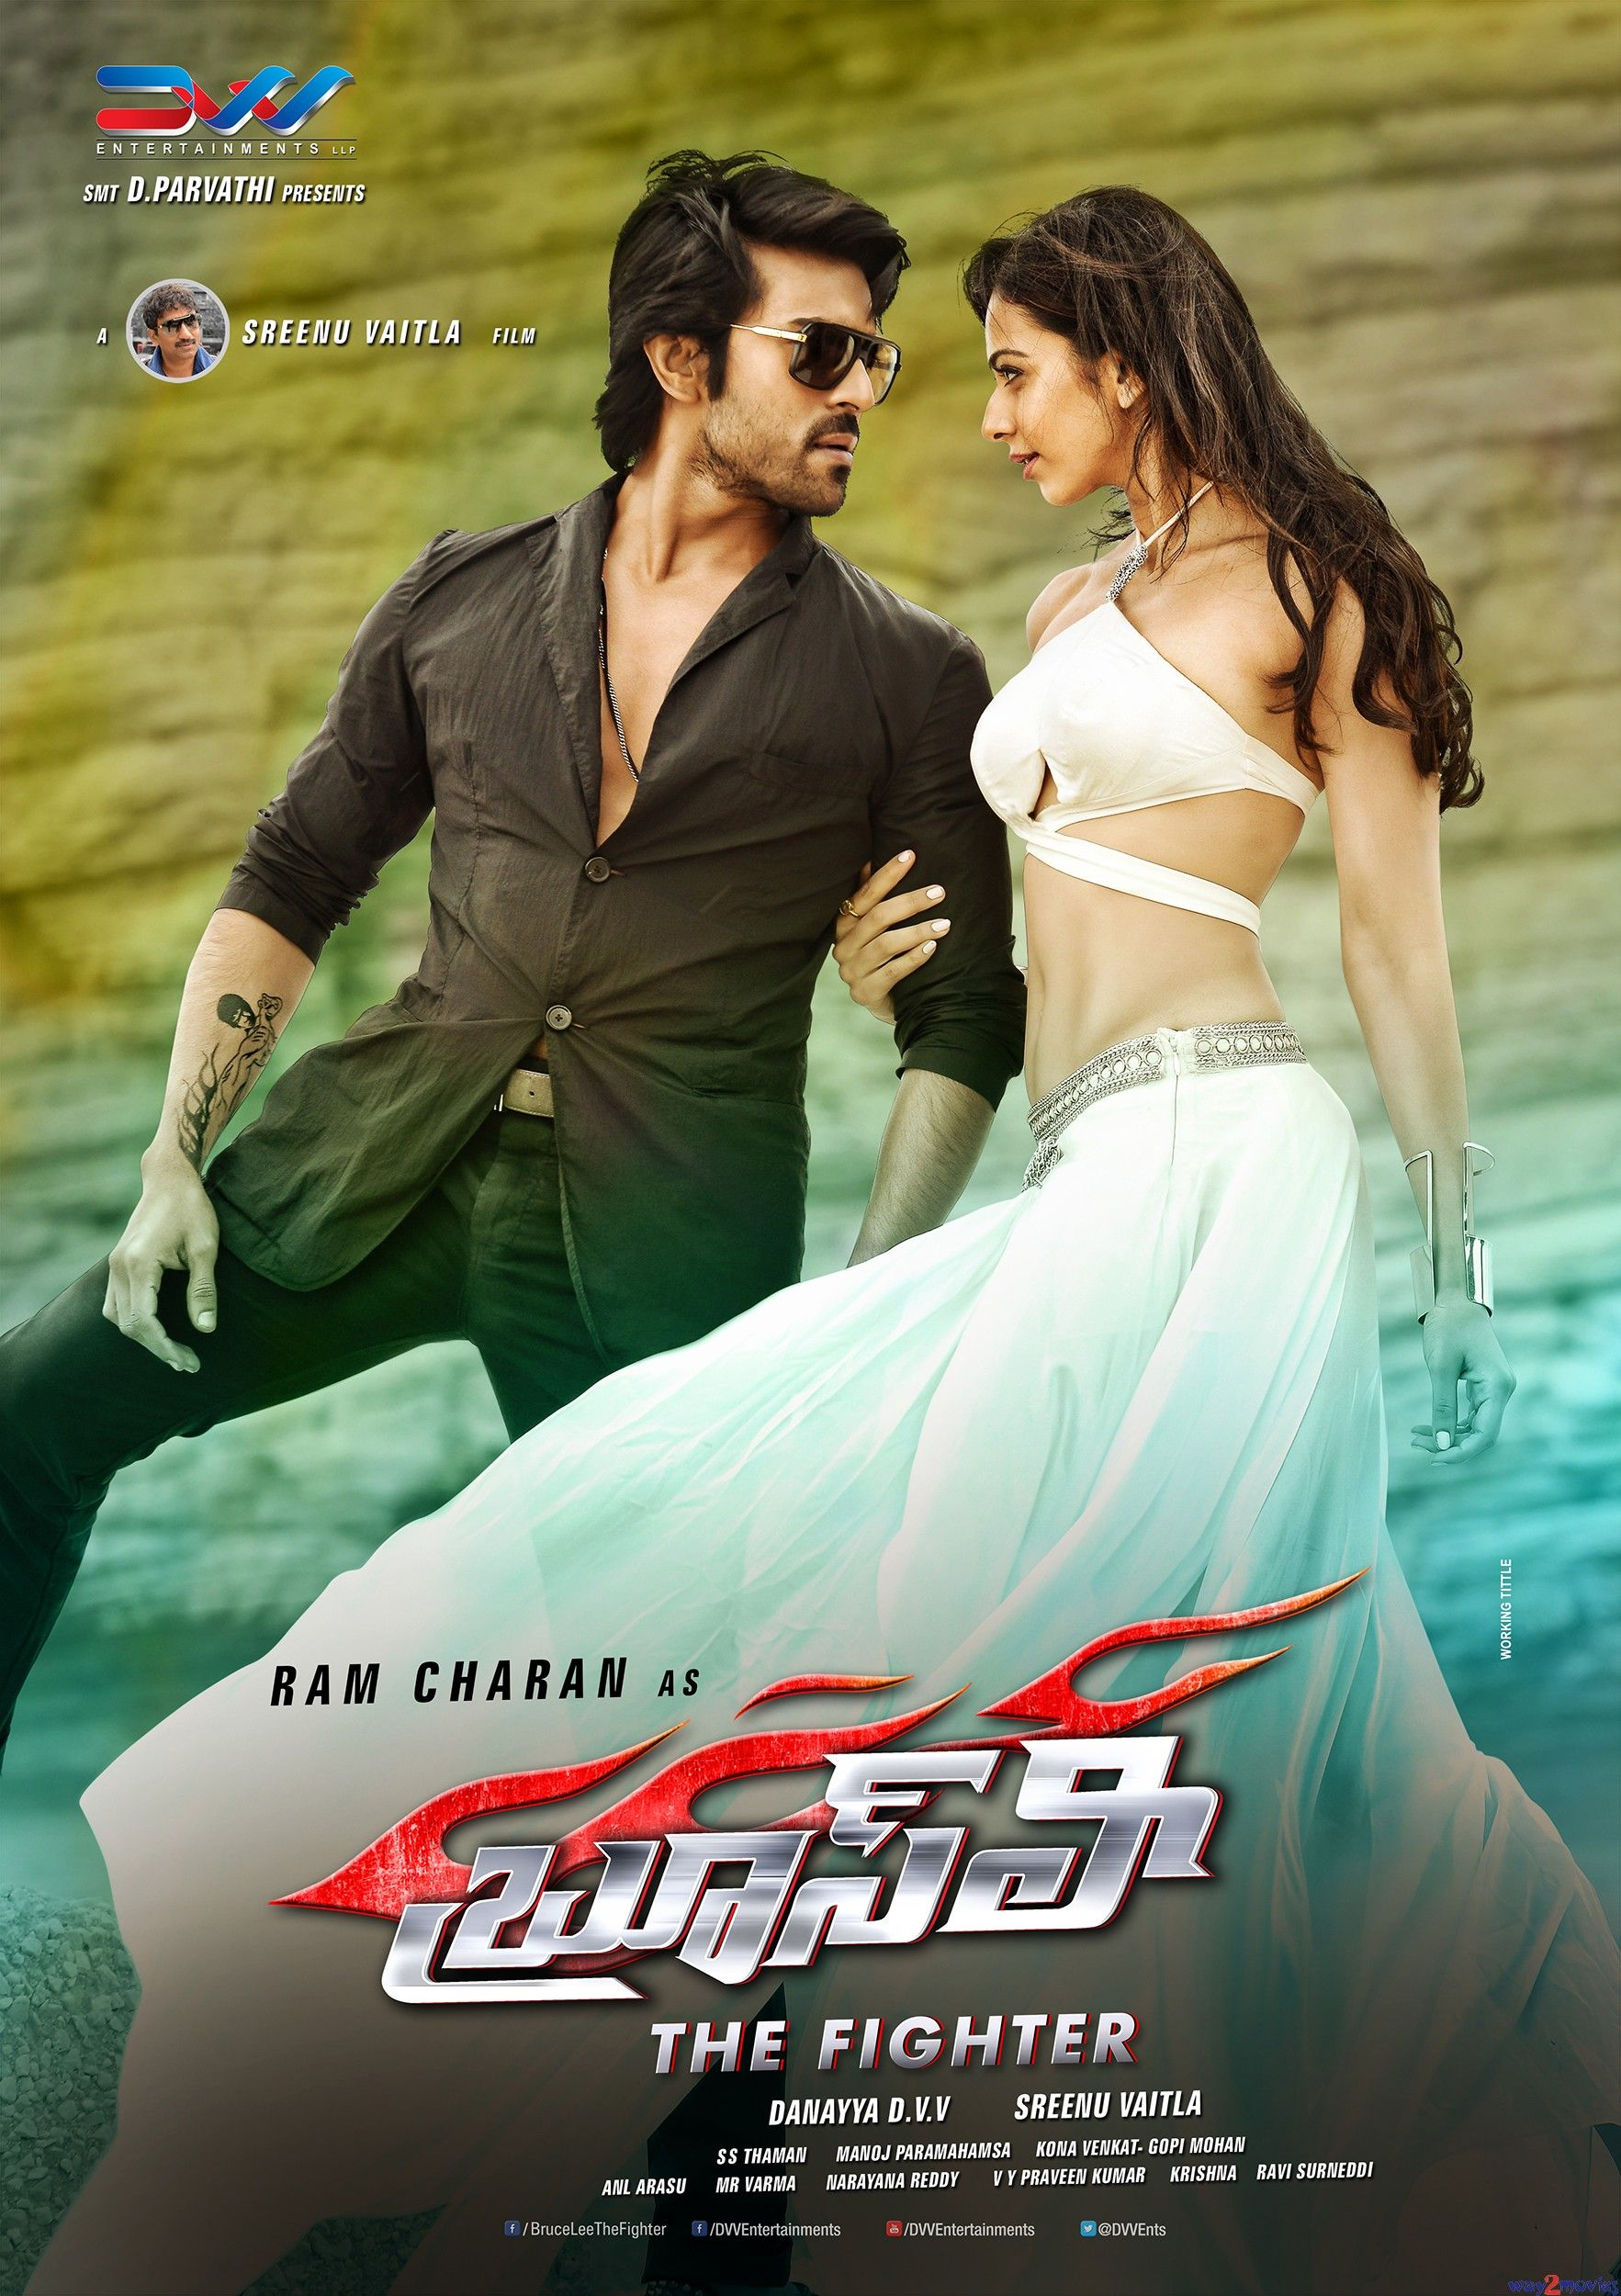 Bruce Lee - The Fighter is an upcoming Telugu action film starring Ram  Charan and Rakul